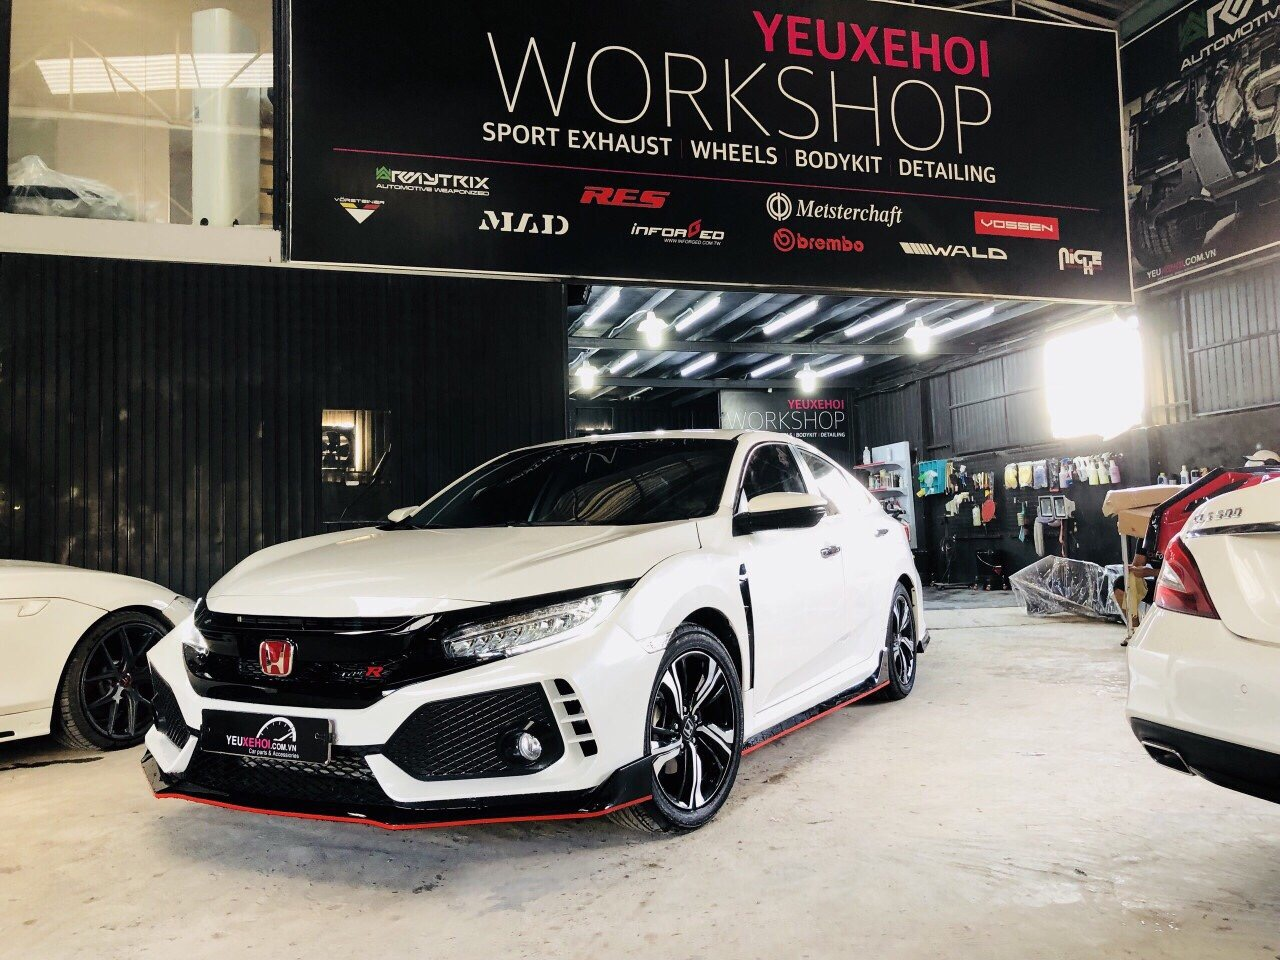 CIVIC TYPE R BODYKIT / RES EXHAUST